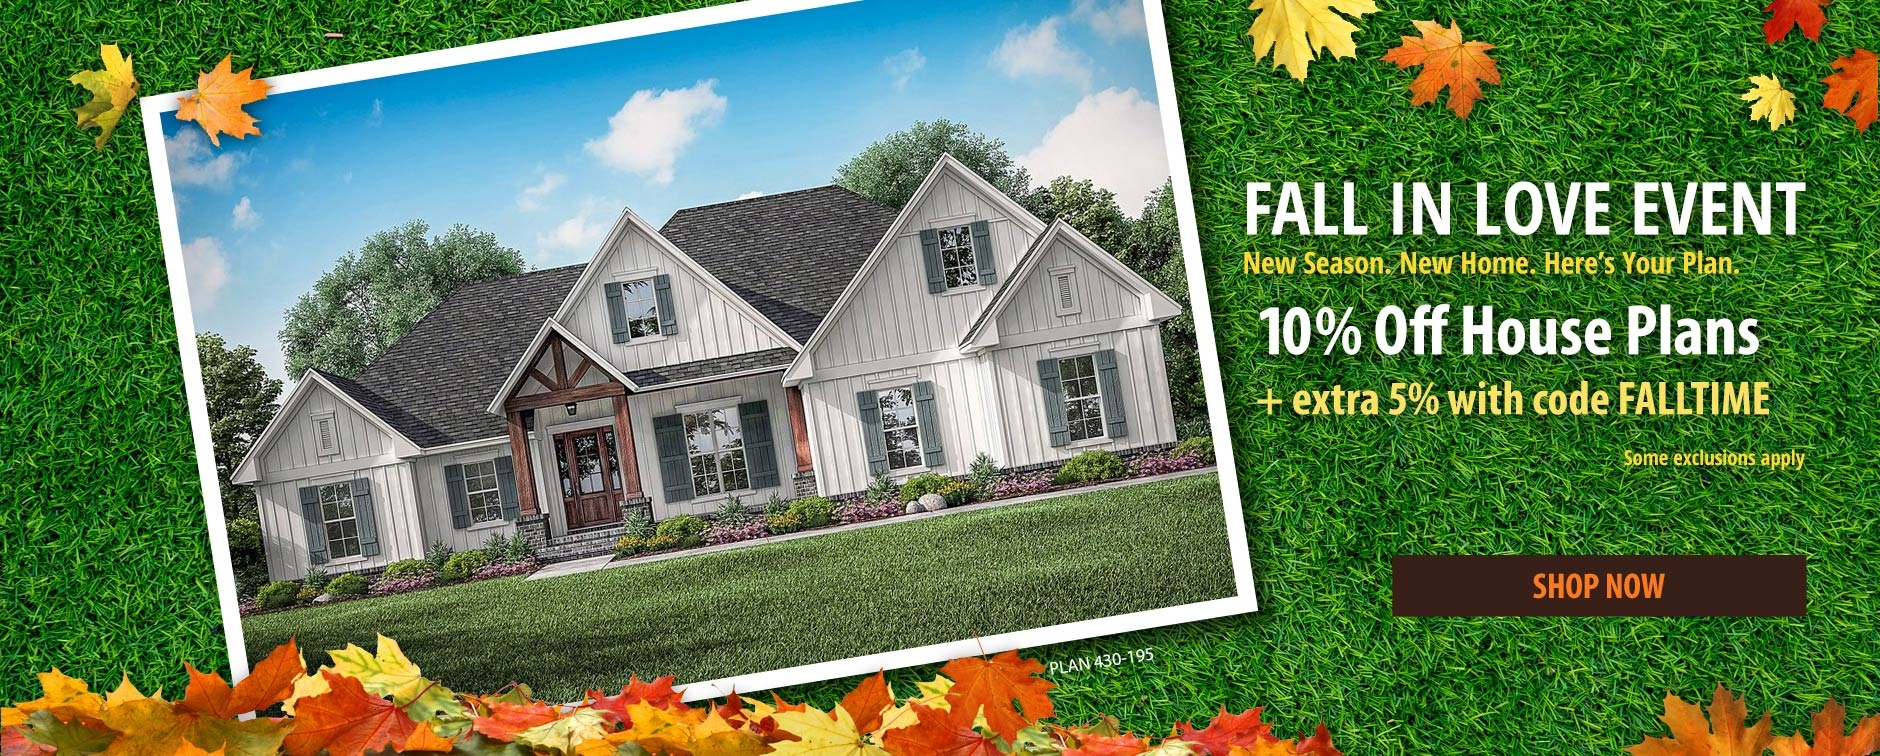 Home Plan Sale 10% Off Floor Plans Plus Extra 5% with Code FALLTIME